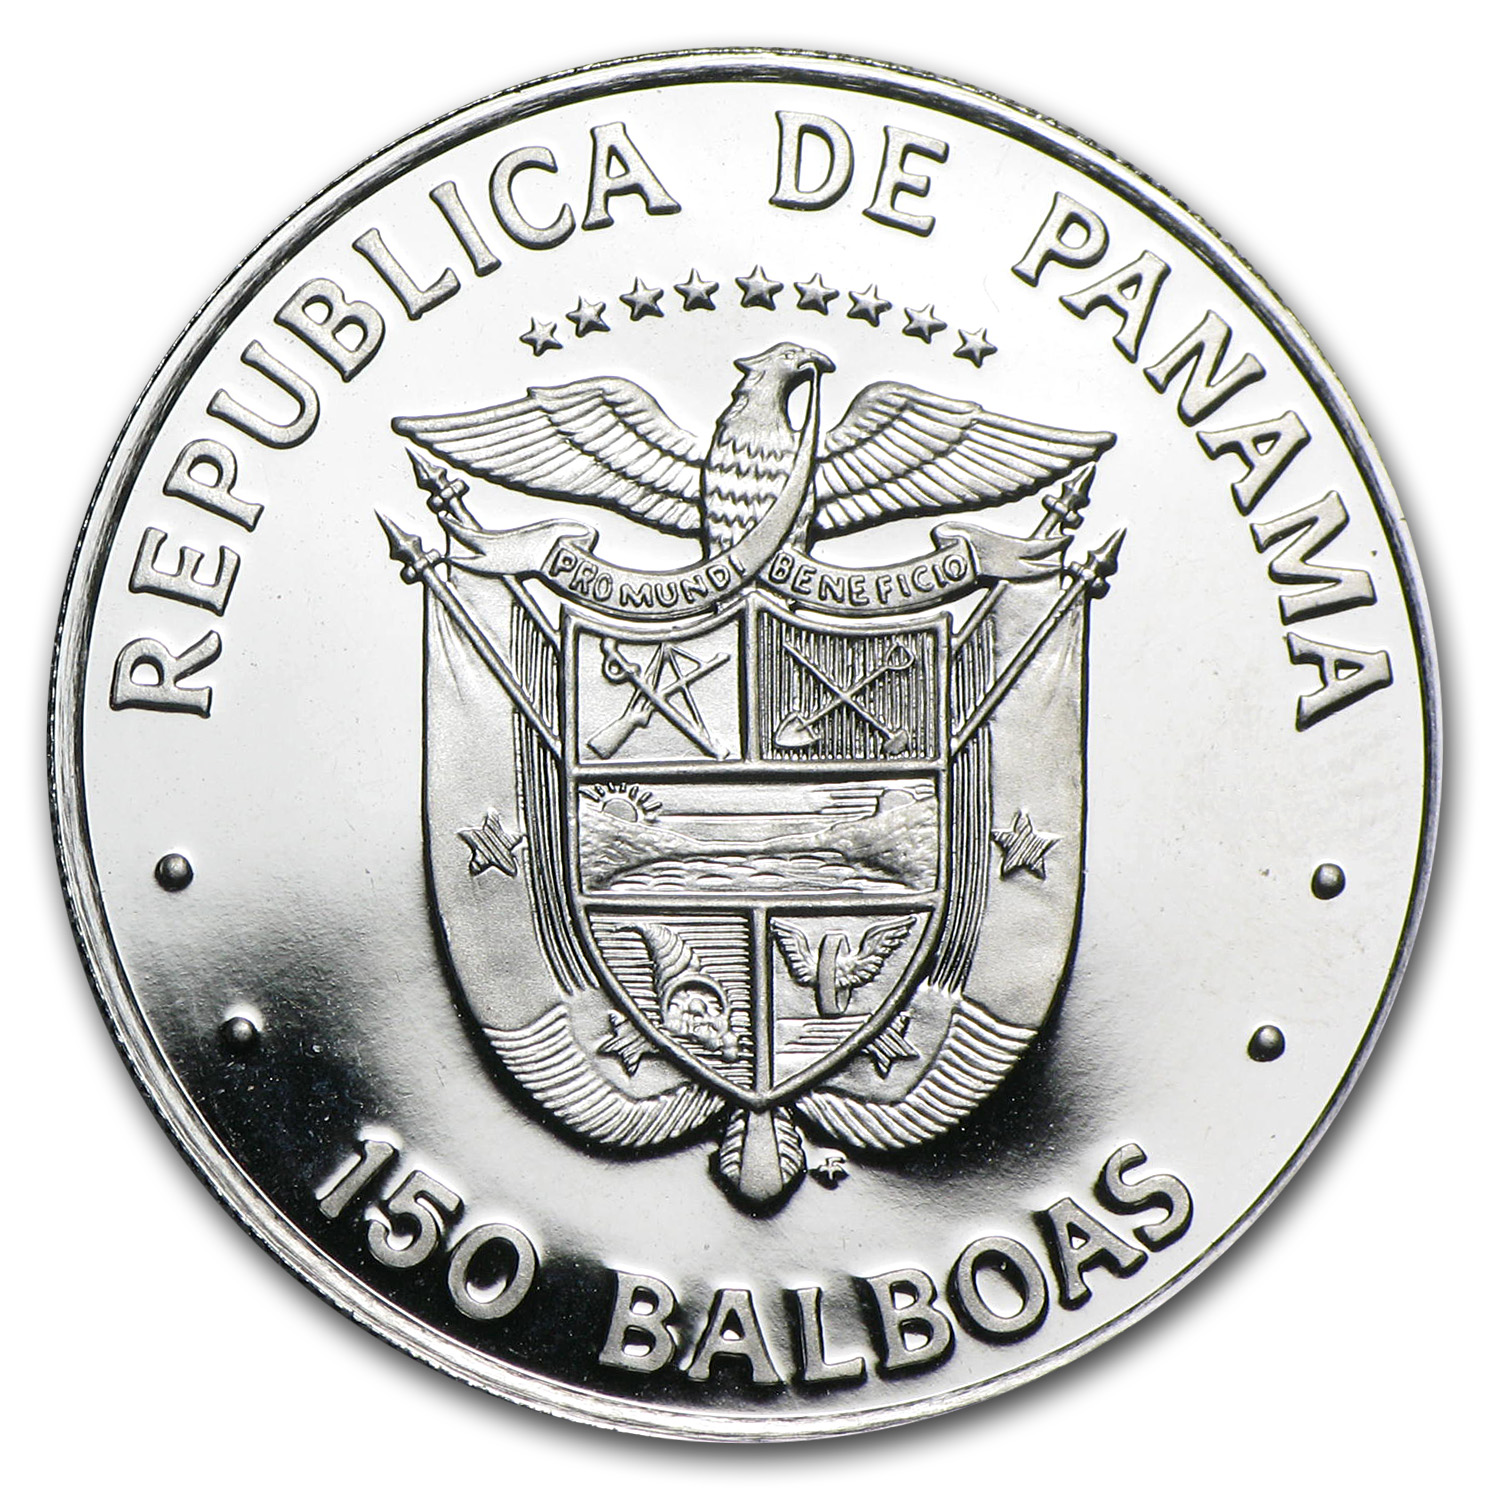 1976 Panama Platinum 150 Balboas Proof (APW .2987 oz)